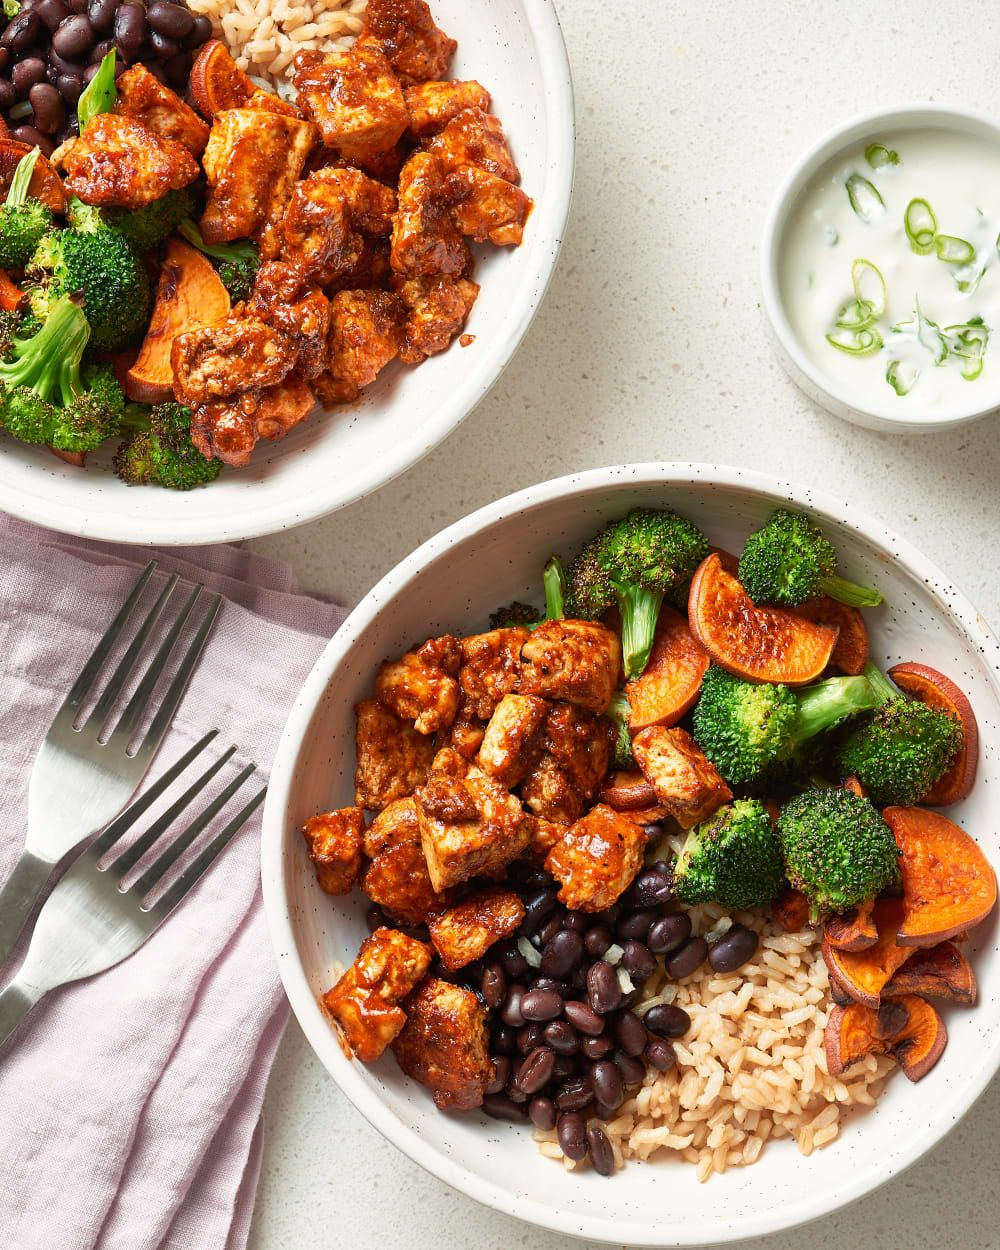 Easy Oatmealrecipe: 20 High-Protein Dinners You Should